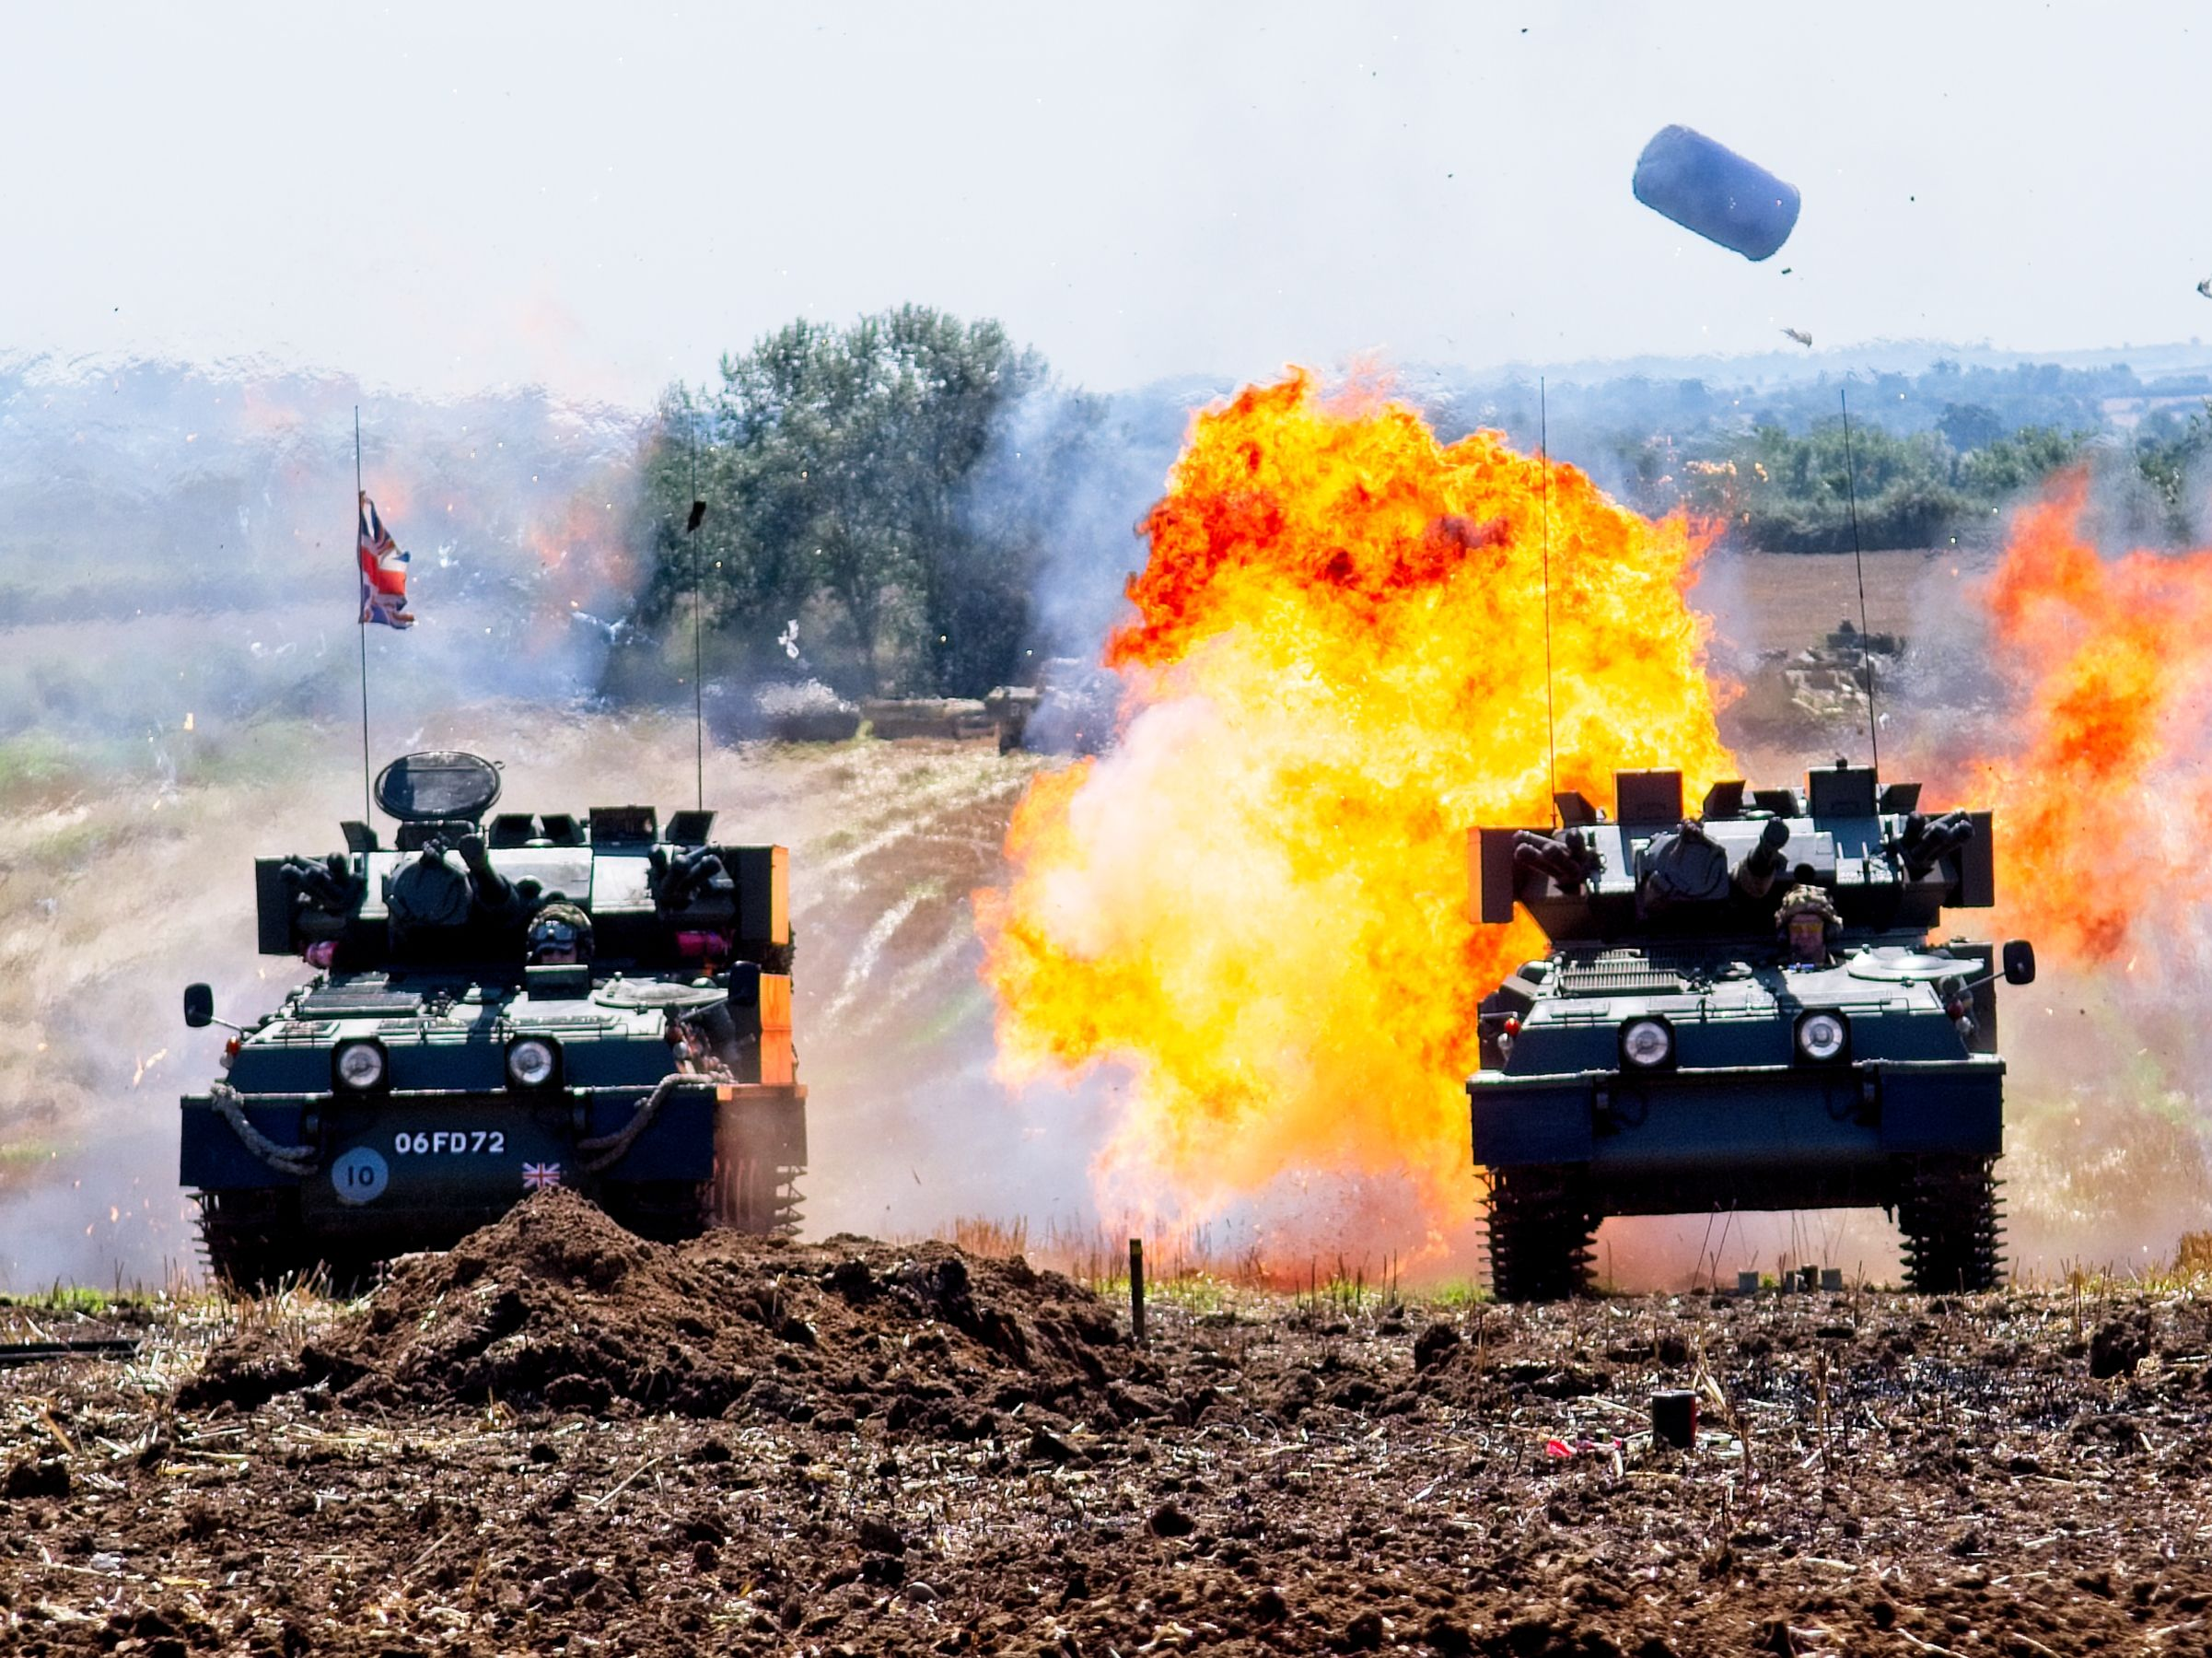 tanks, trucks & firepower 2019 armoured vehicles drive through explosions with balls of fire around one vehicle